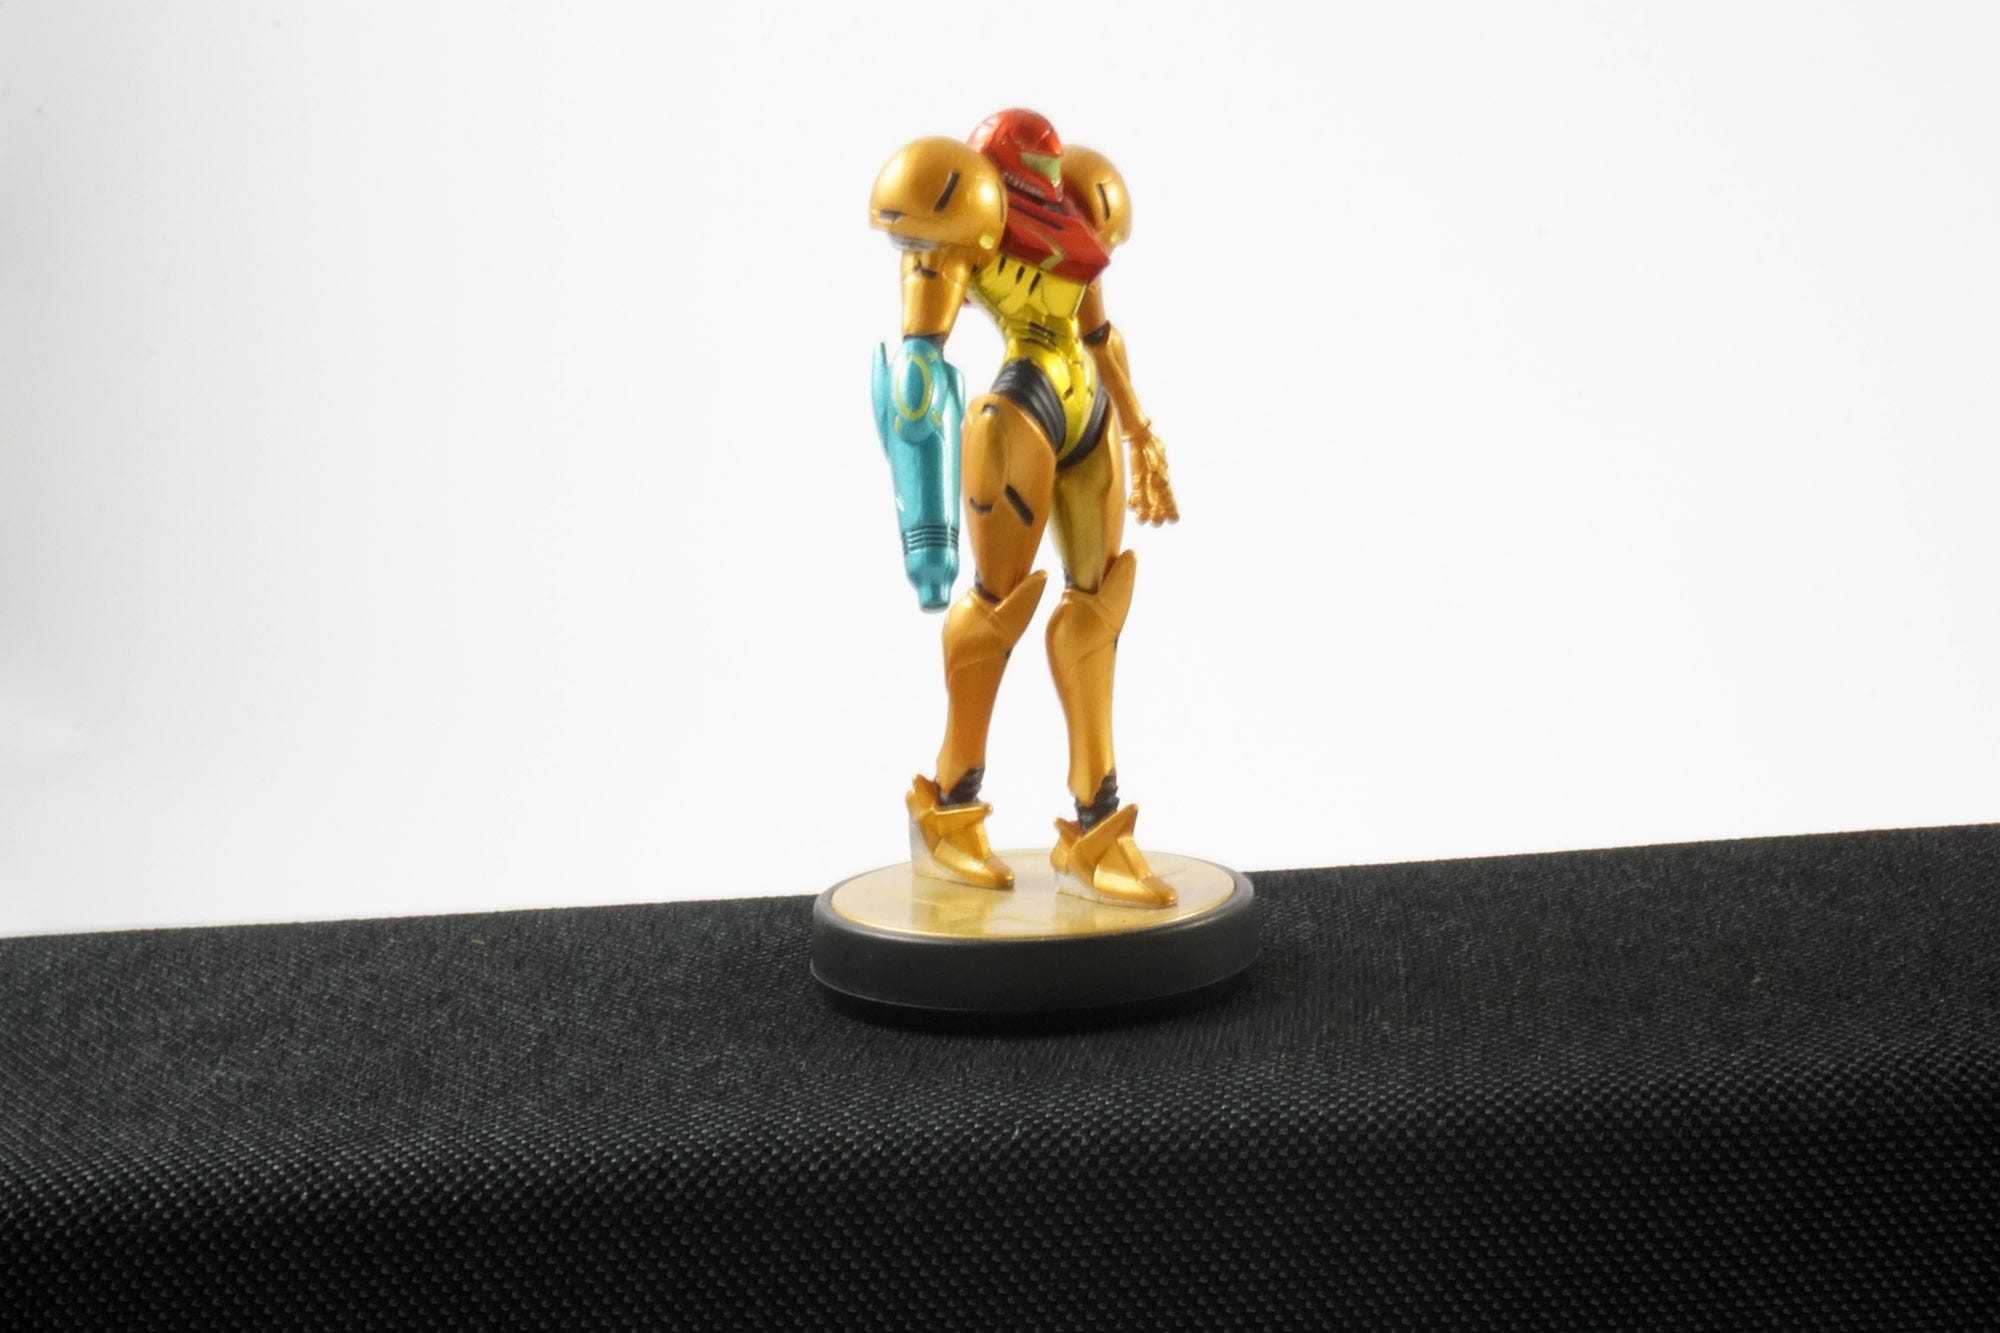 The Atmos drivers are hard to see, but here they are shaking Samus.